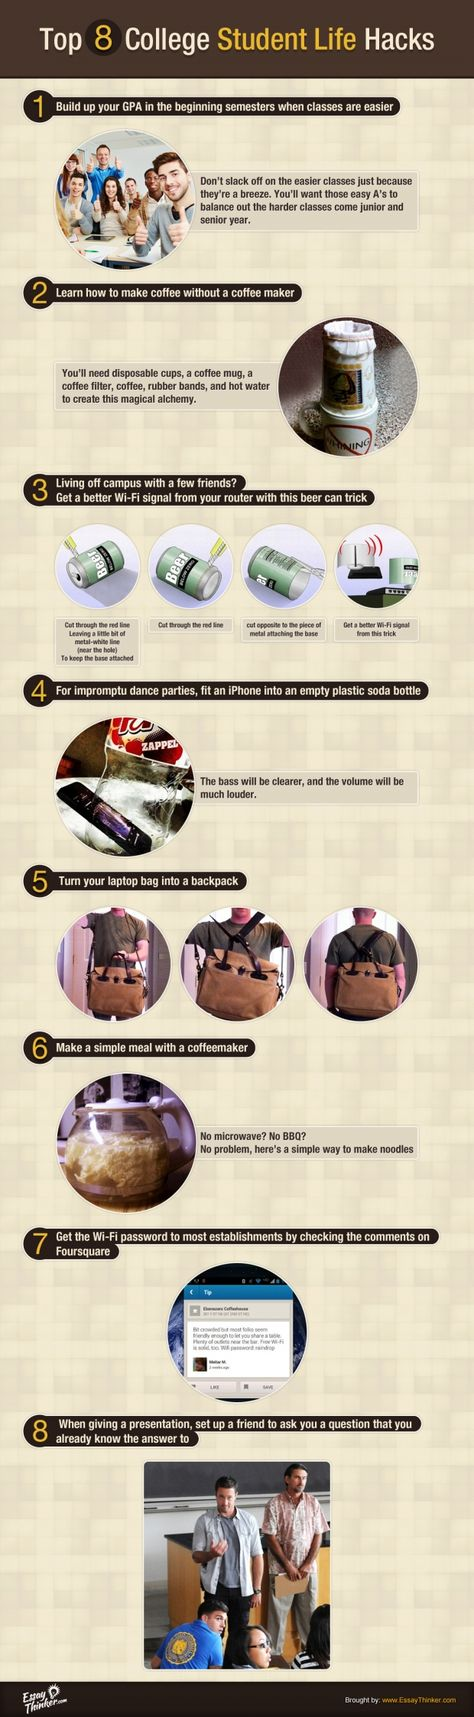 Top 8 College Student Life Hacks Infographic - e-Learning Infographics